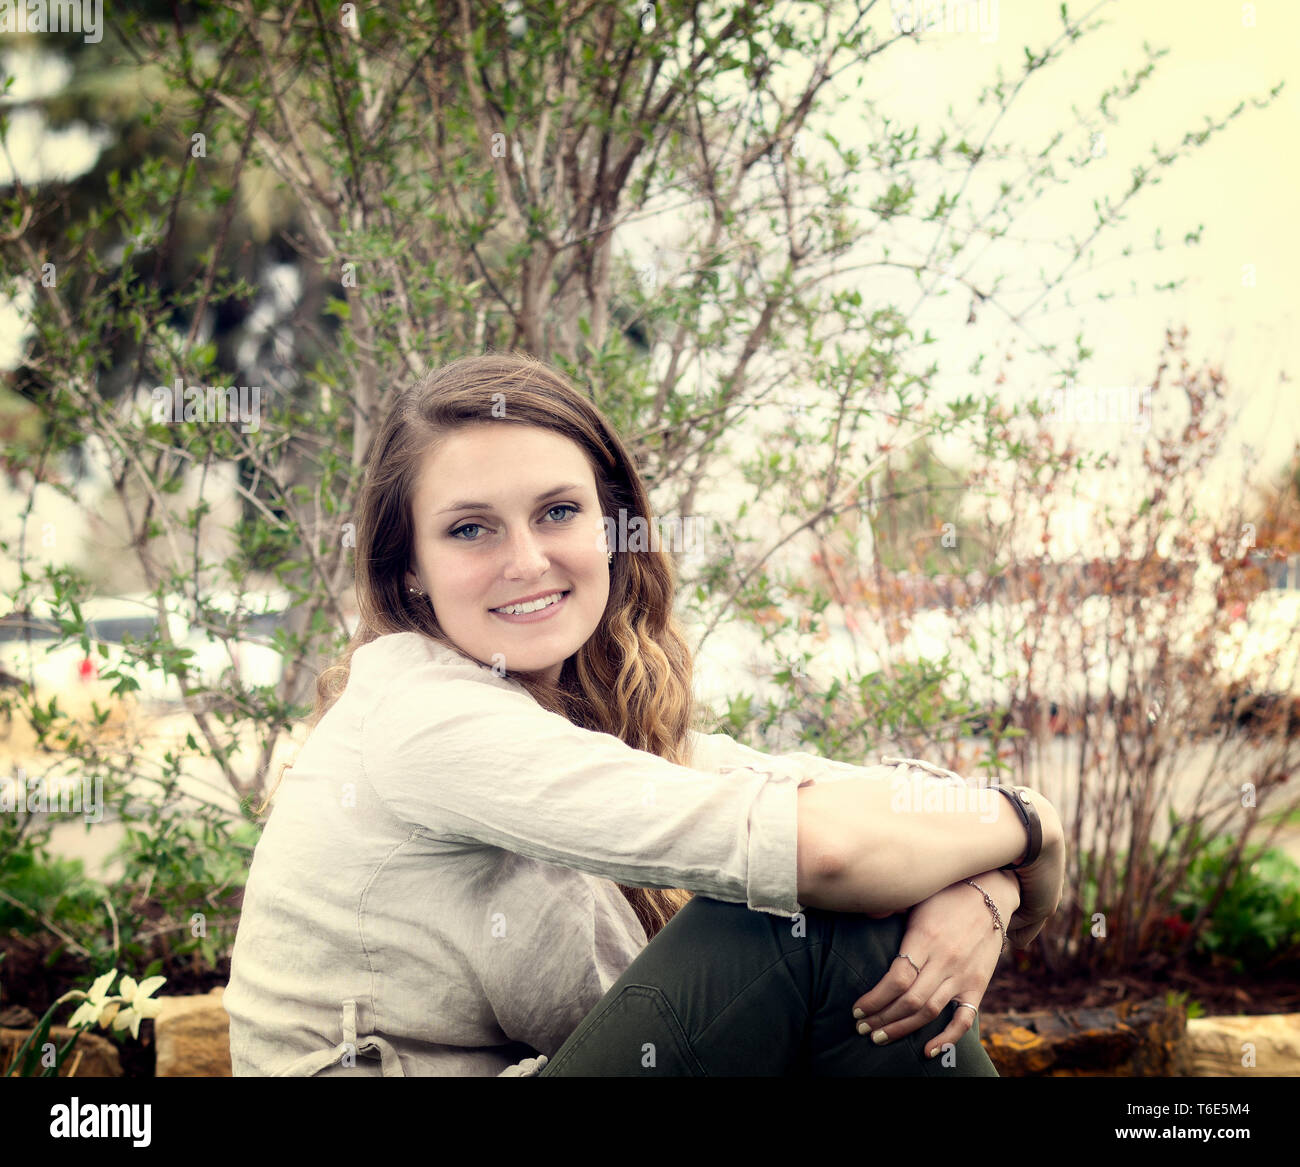 Beautiful Young Caucasian Woman Outdoor Shots in Nature - Stock Image